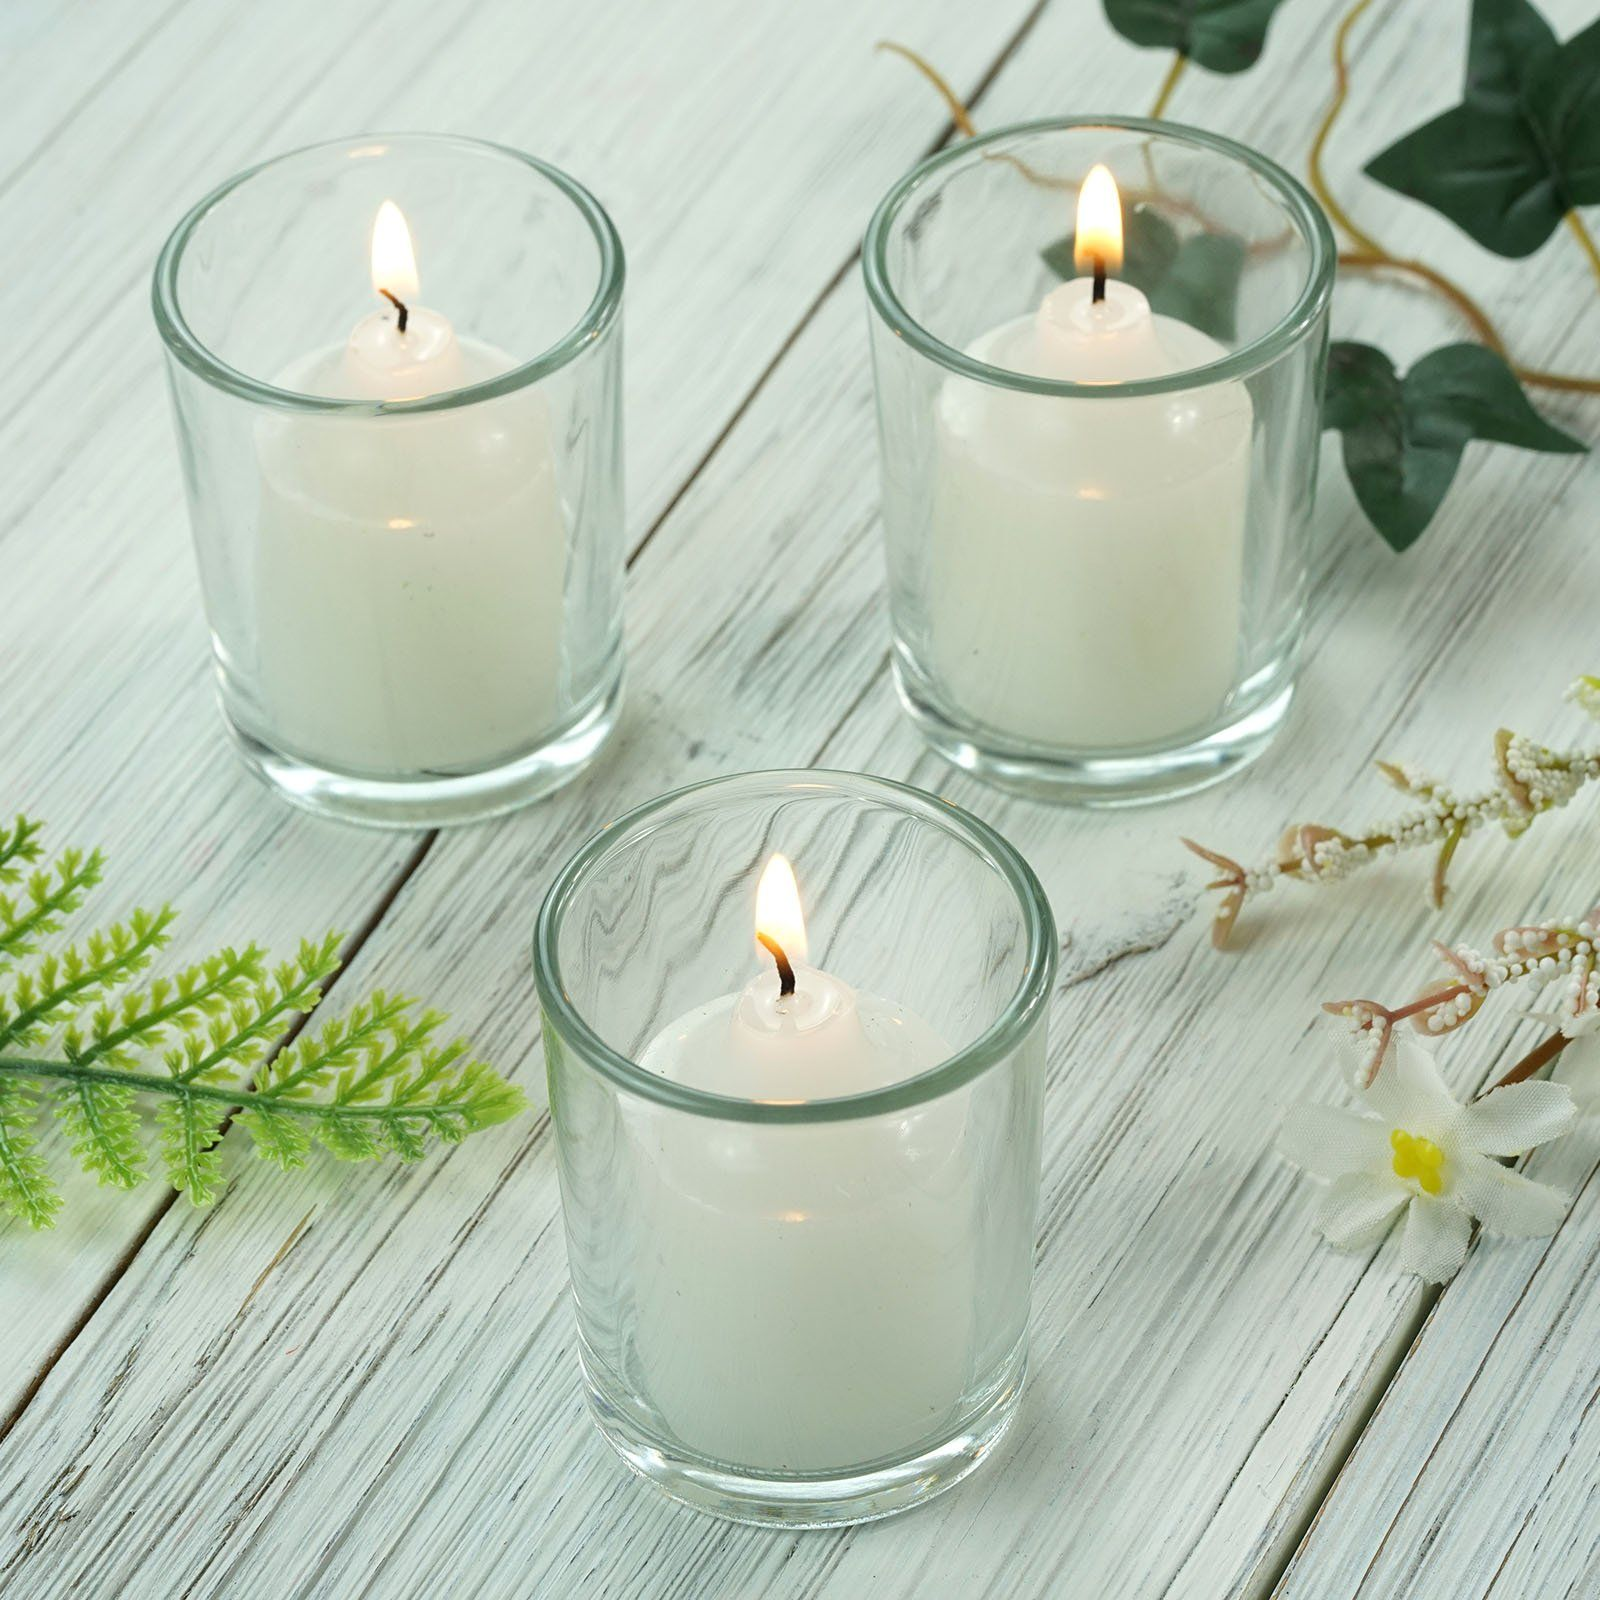 Table Top Decor Table Centerpieces Efavormart In 2020 Glass Votive Candle Holders Votive Candle Holders Votive Candle Holders Wedding